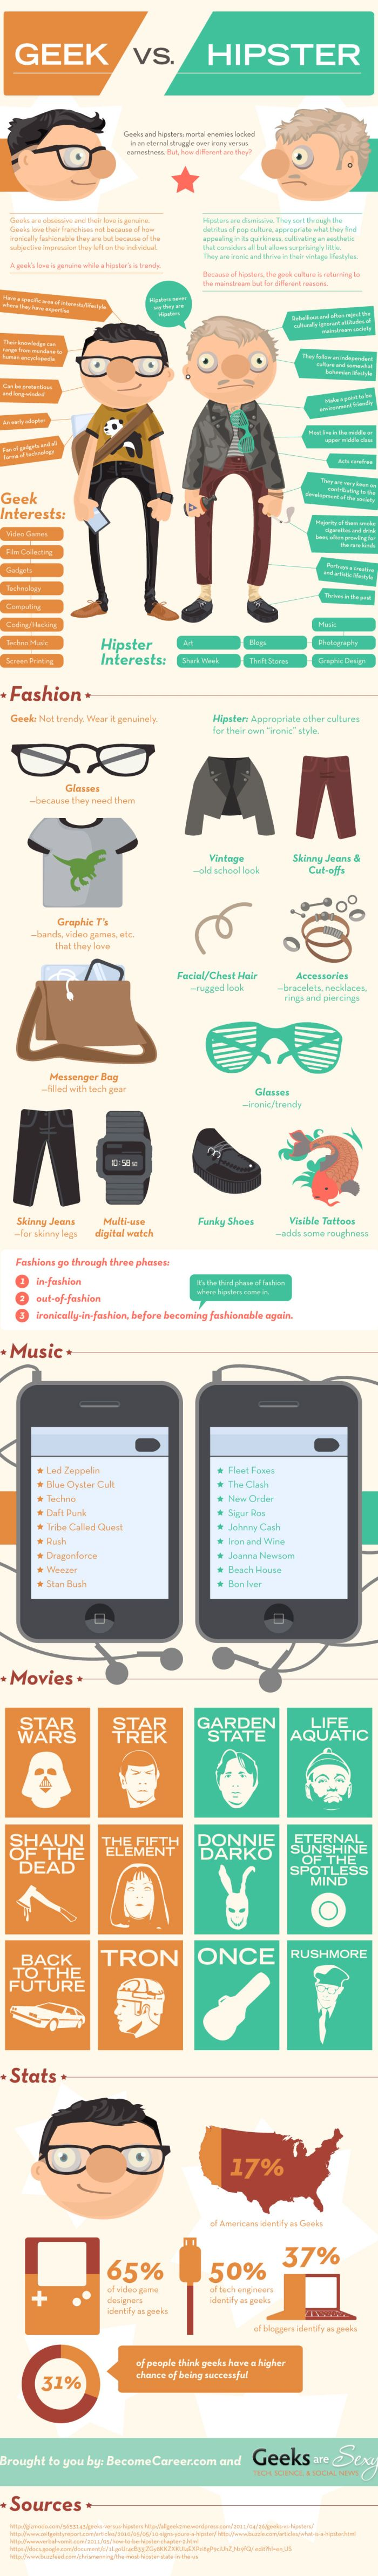 Geeks vs. Hipster (infographic)